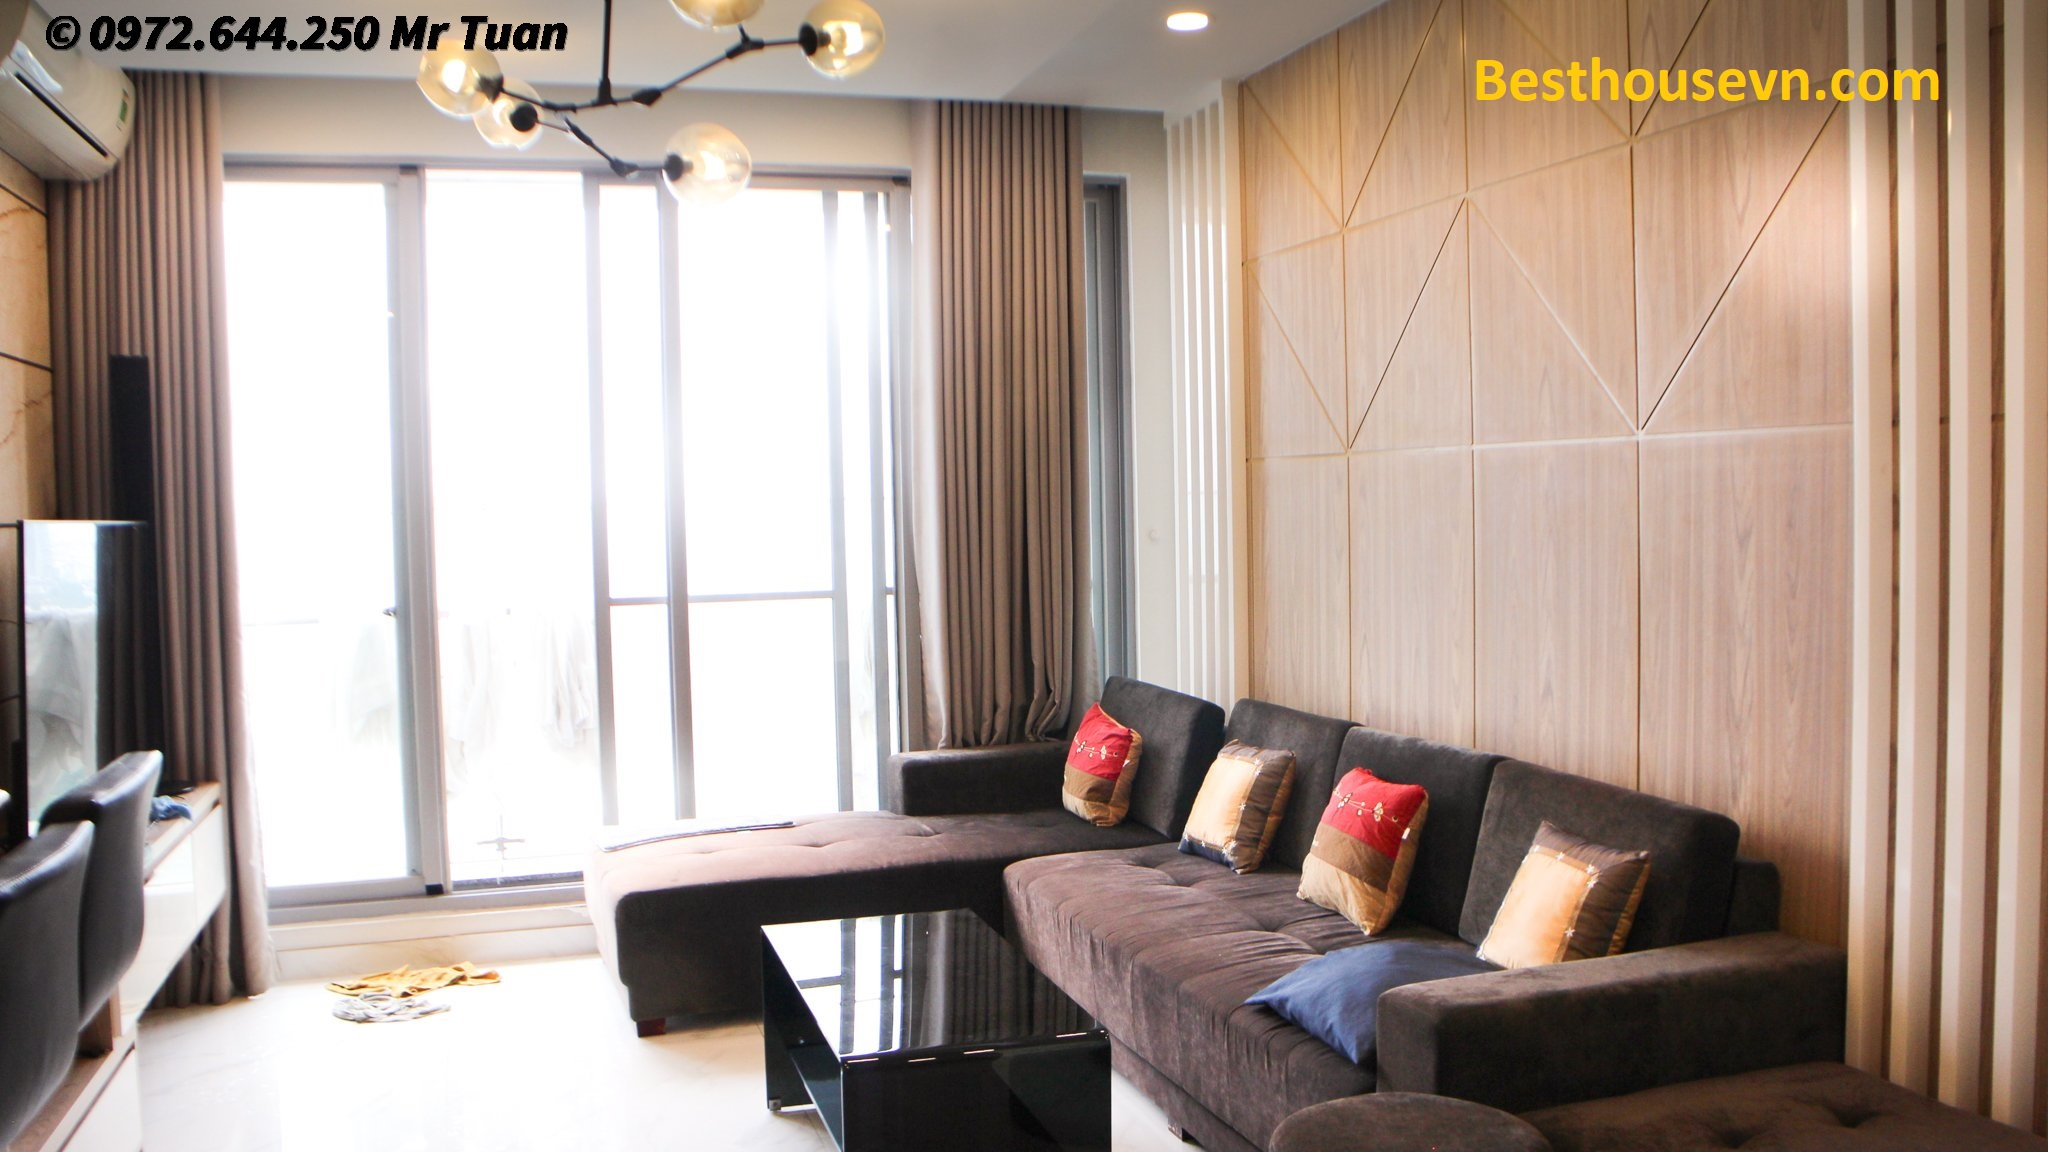 Gorgeous-apartment-90m2-for-rent-in-green valley-luxury-furniture